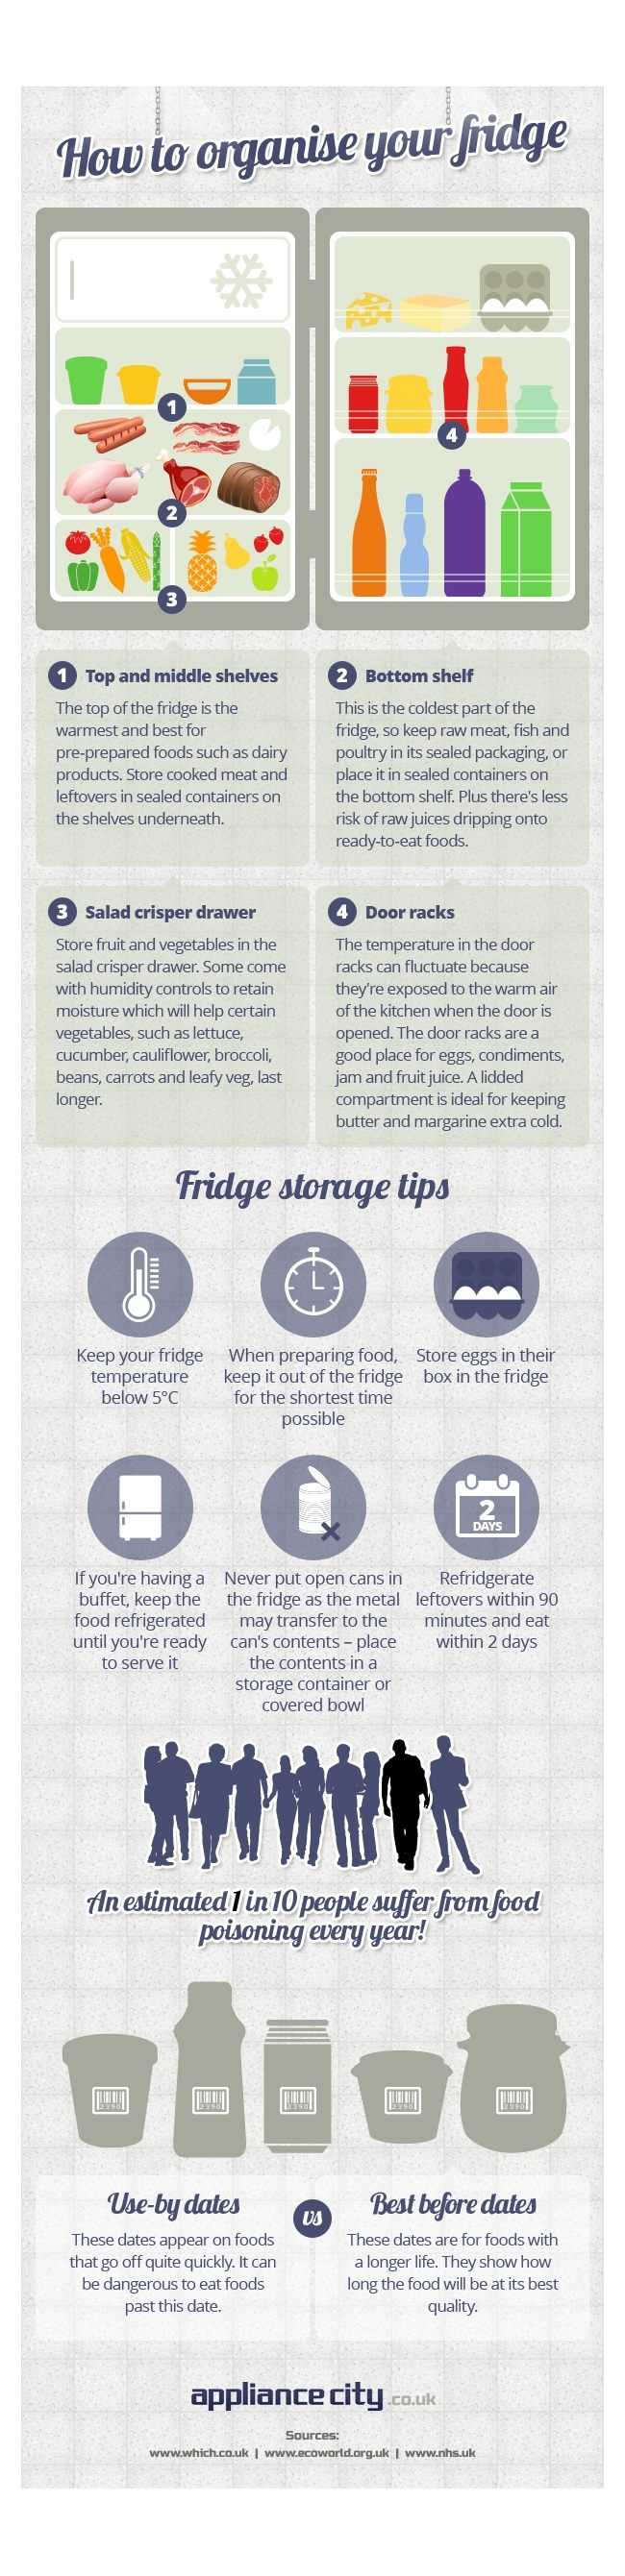 how to organize your fridge infographic